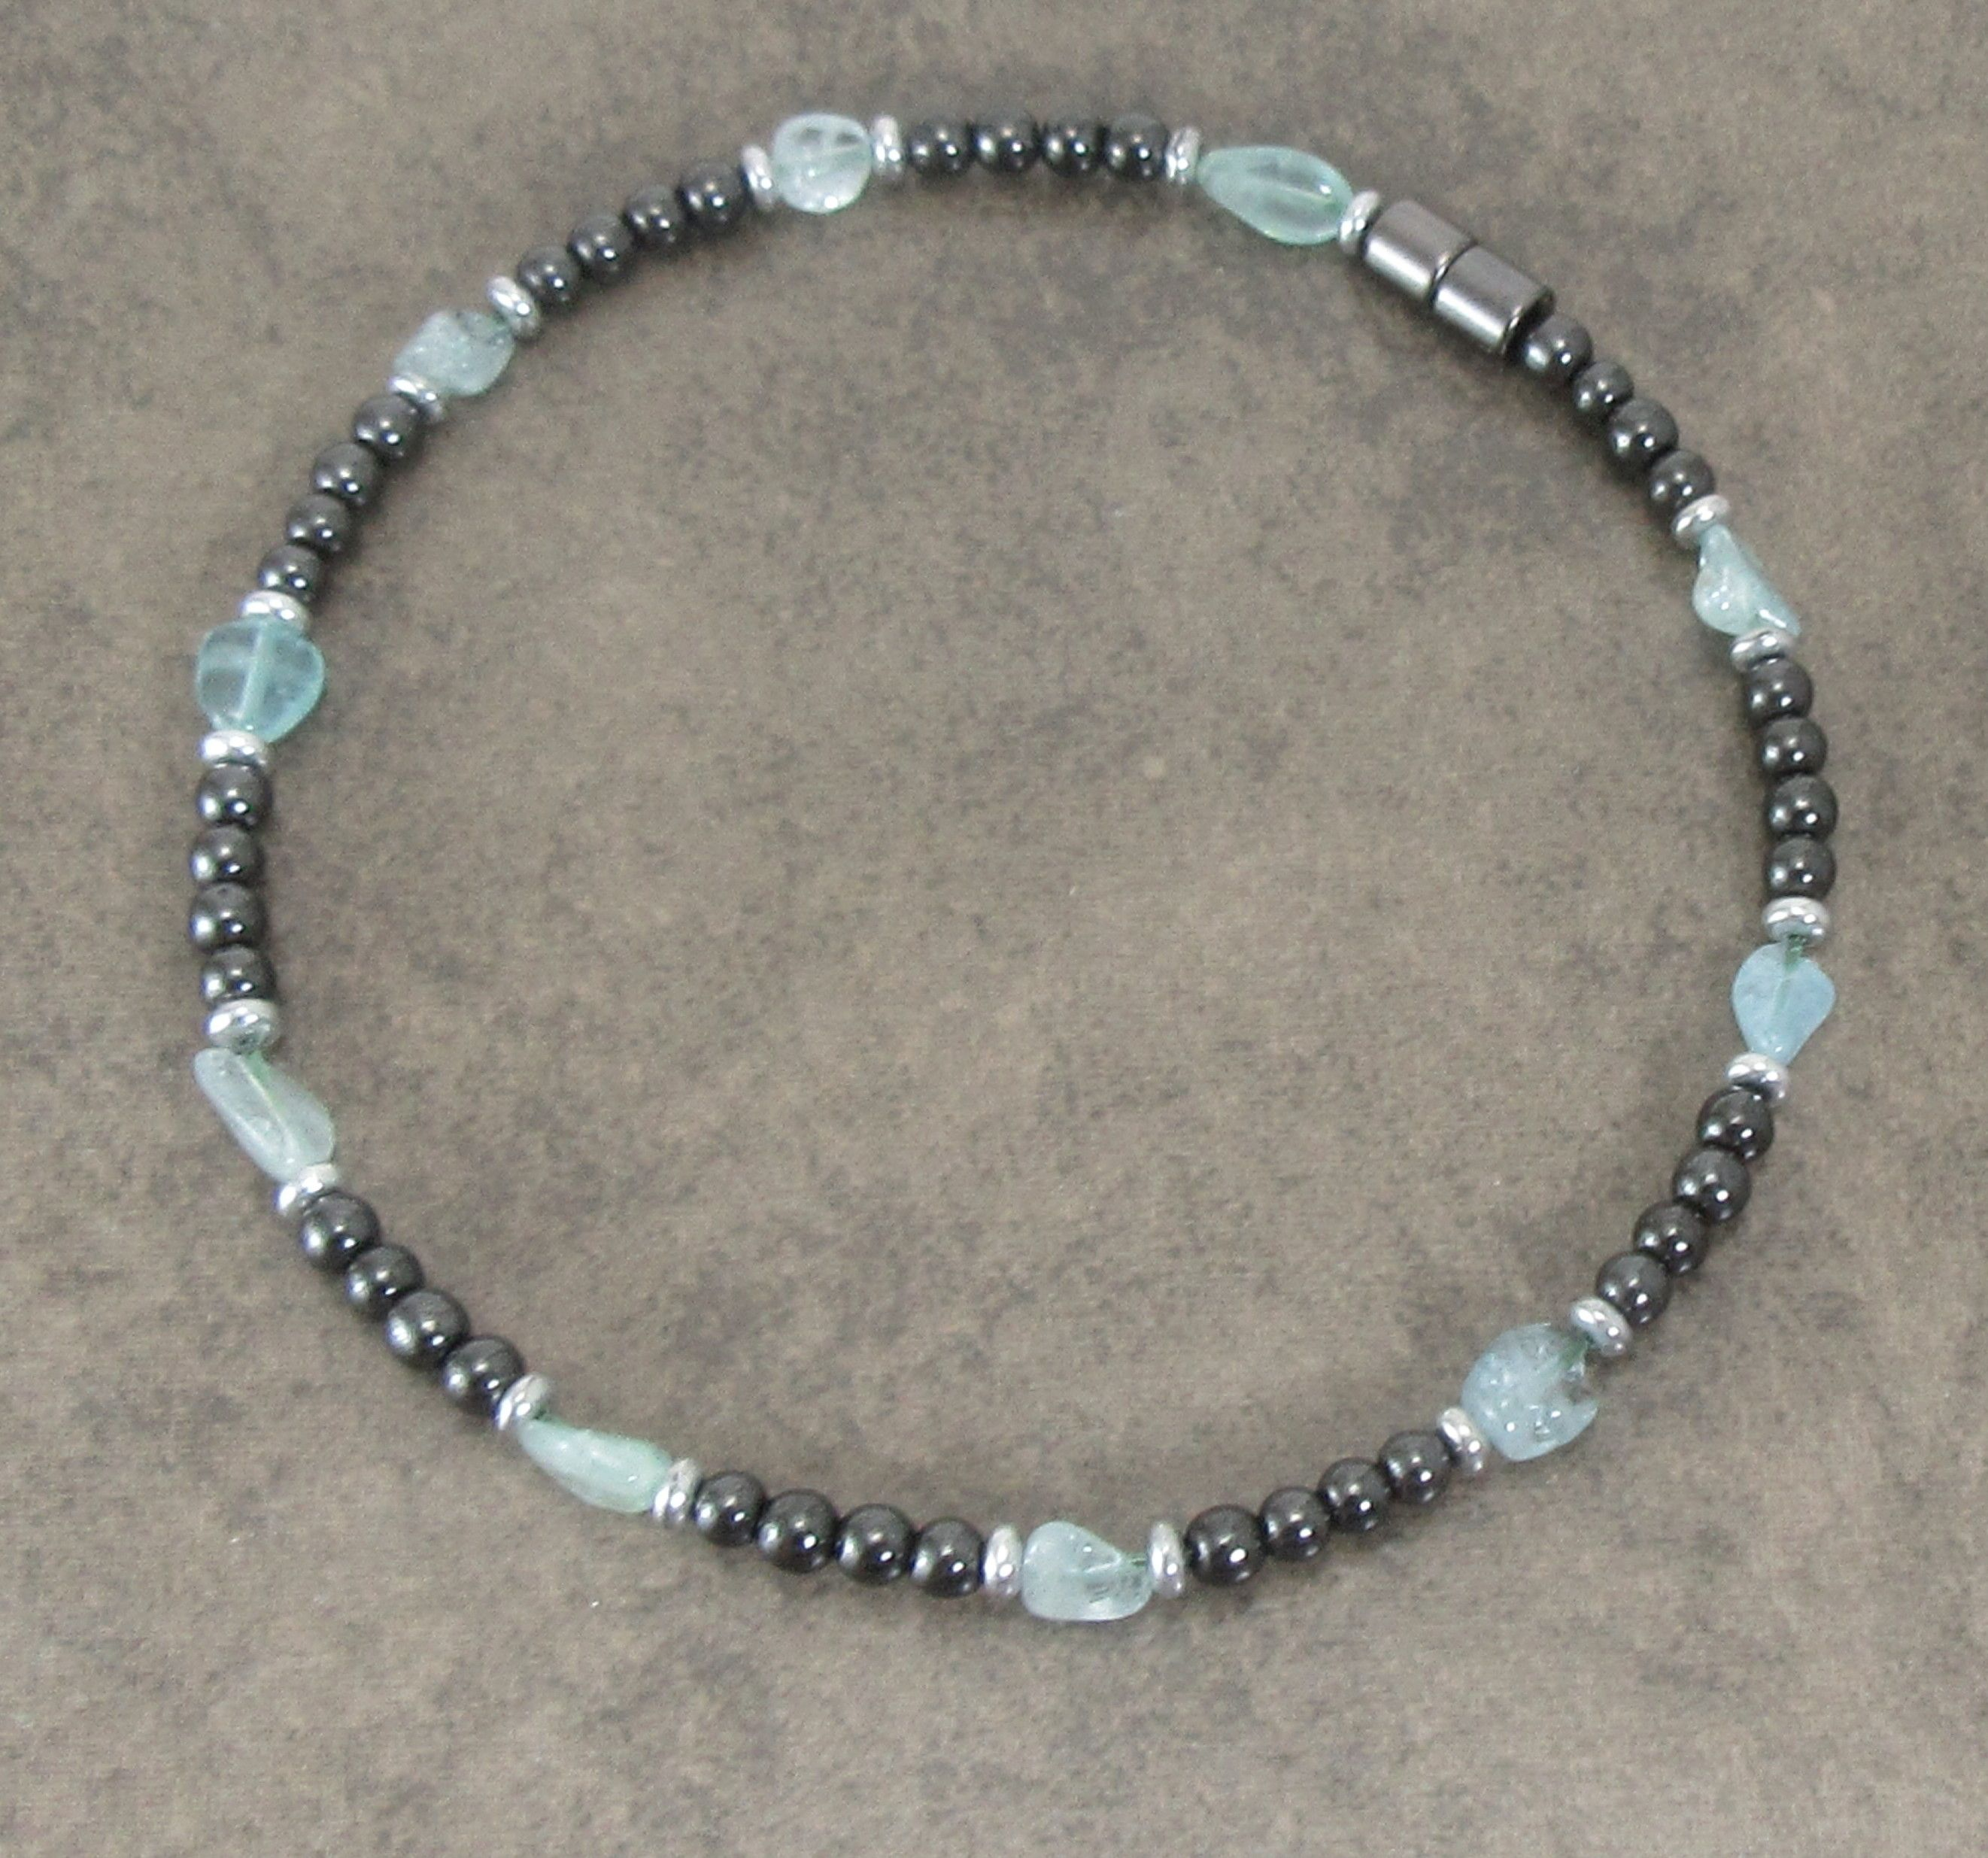 sphere shop jensen aquamarine anklet denmark necklace img georg silver sterling